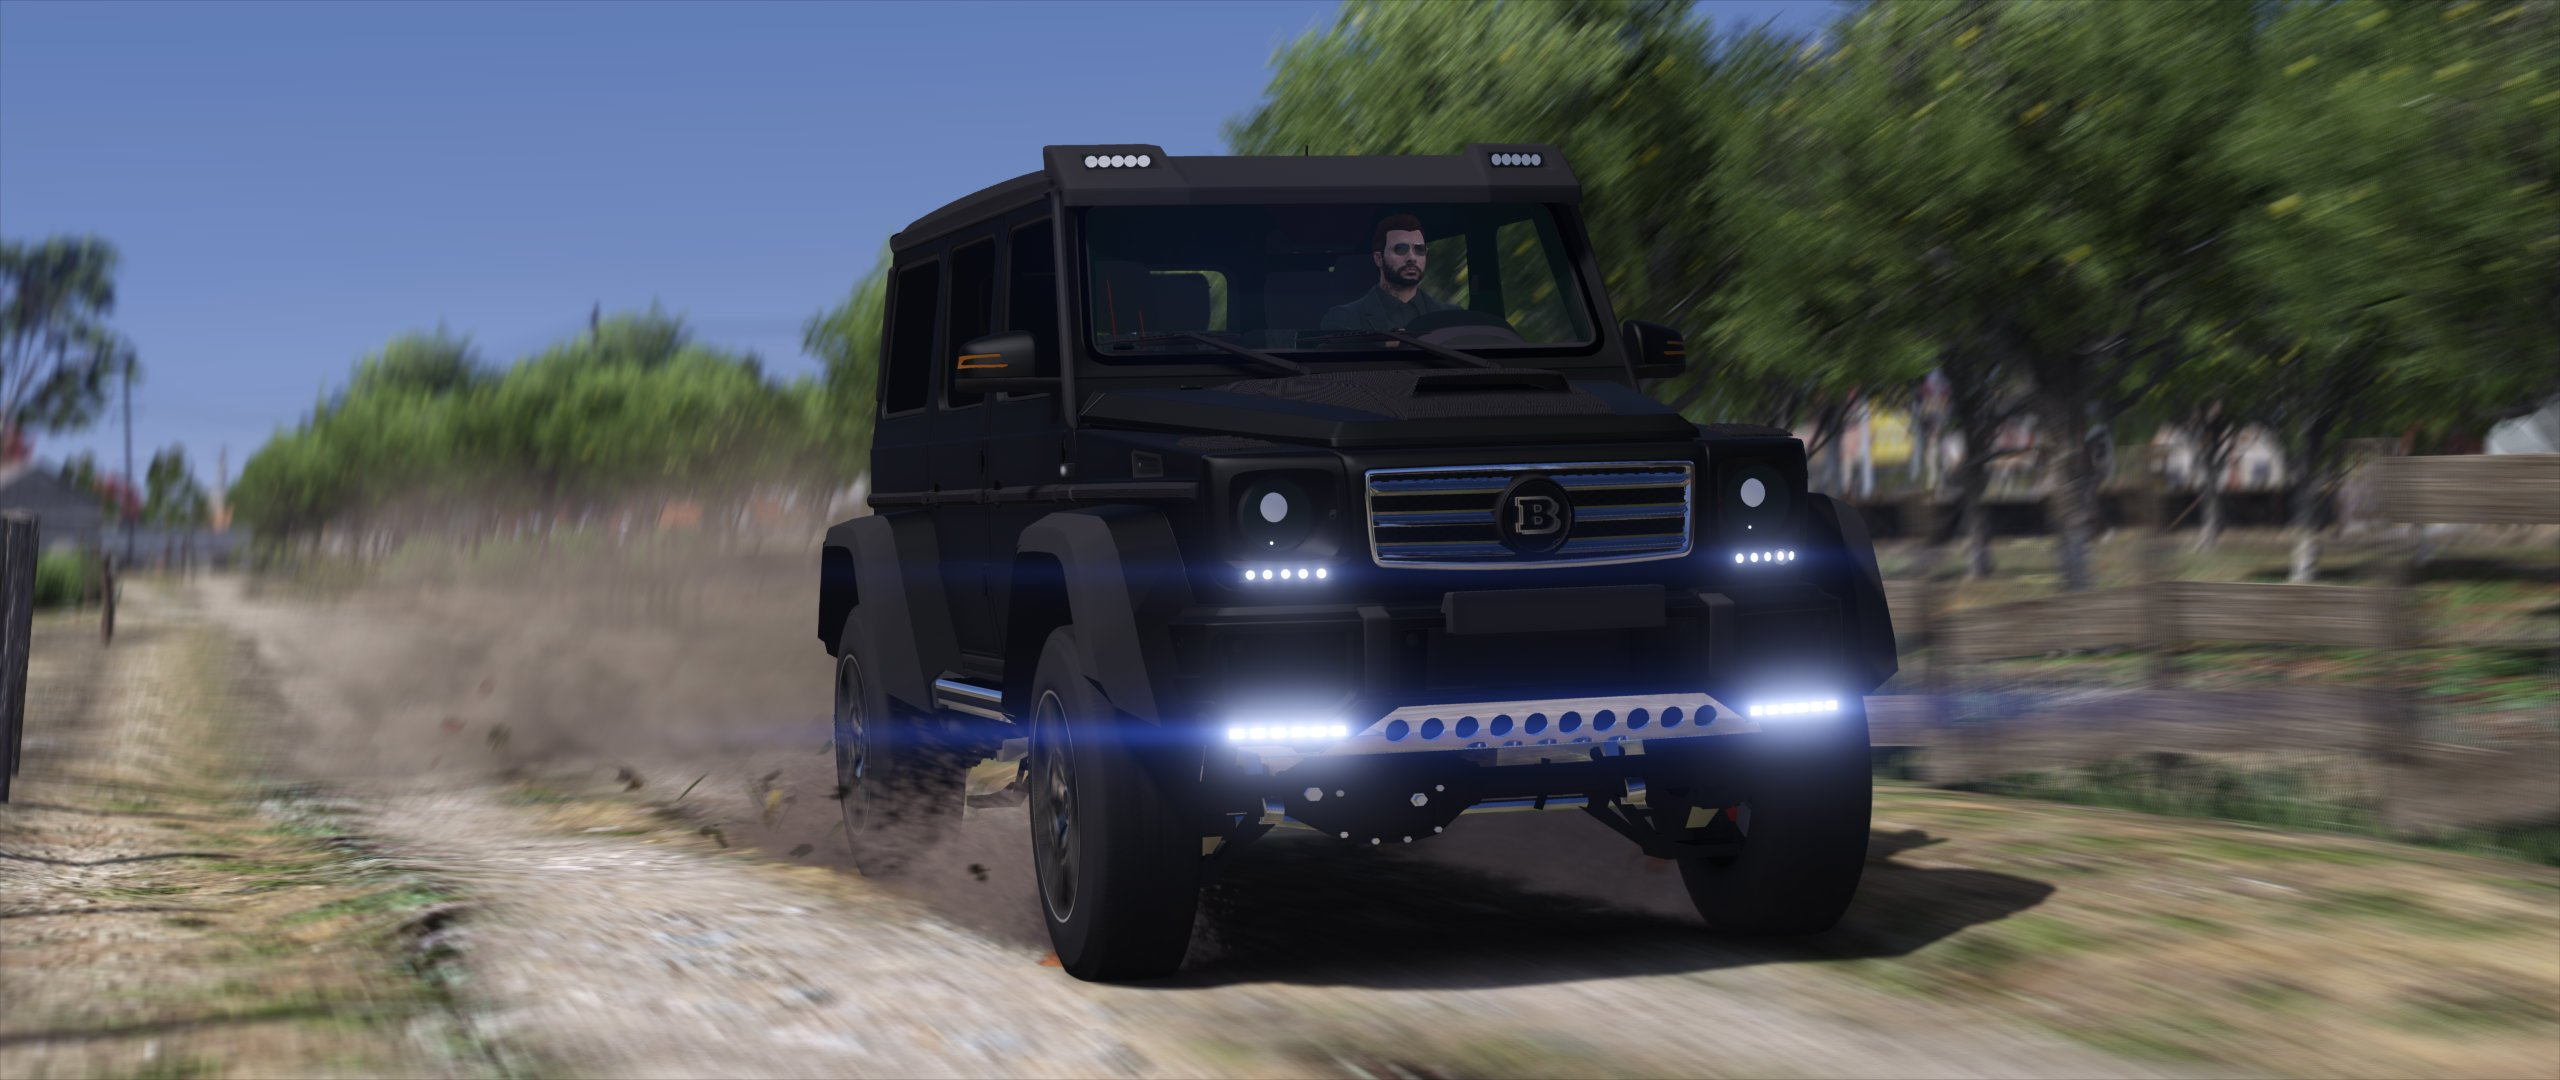 Mercedes-Benz G500 4x4 Brabus [Replace] - GTA5-Mods com